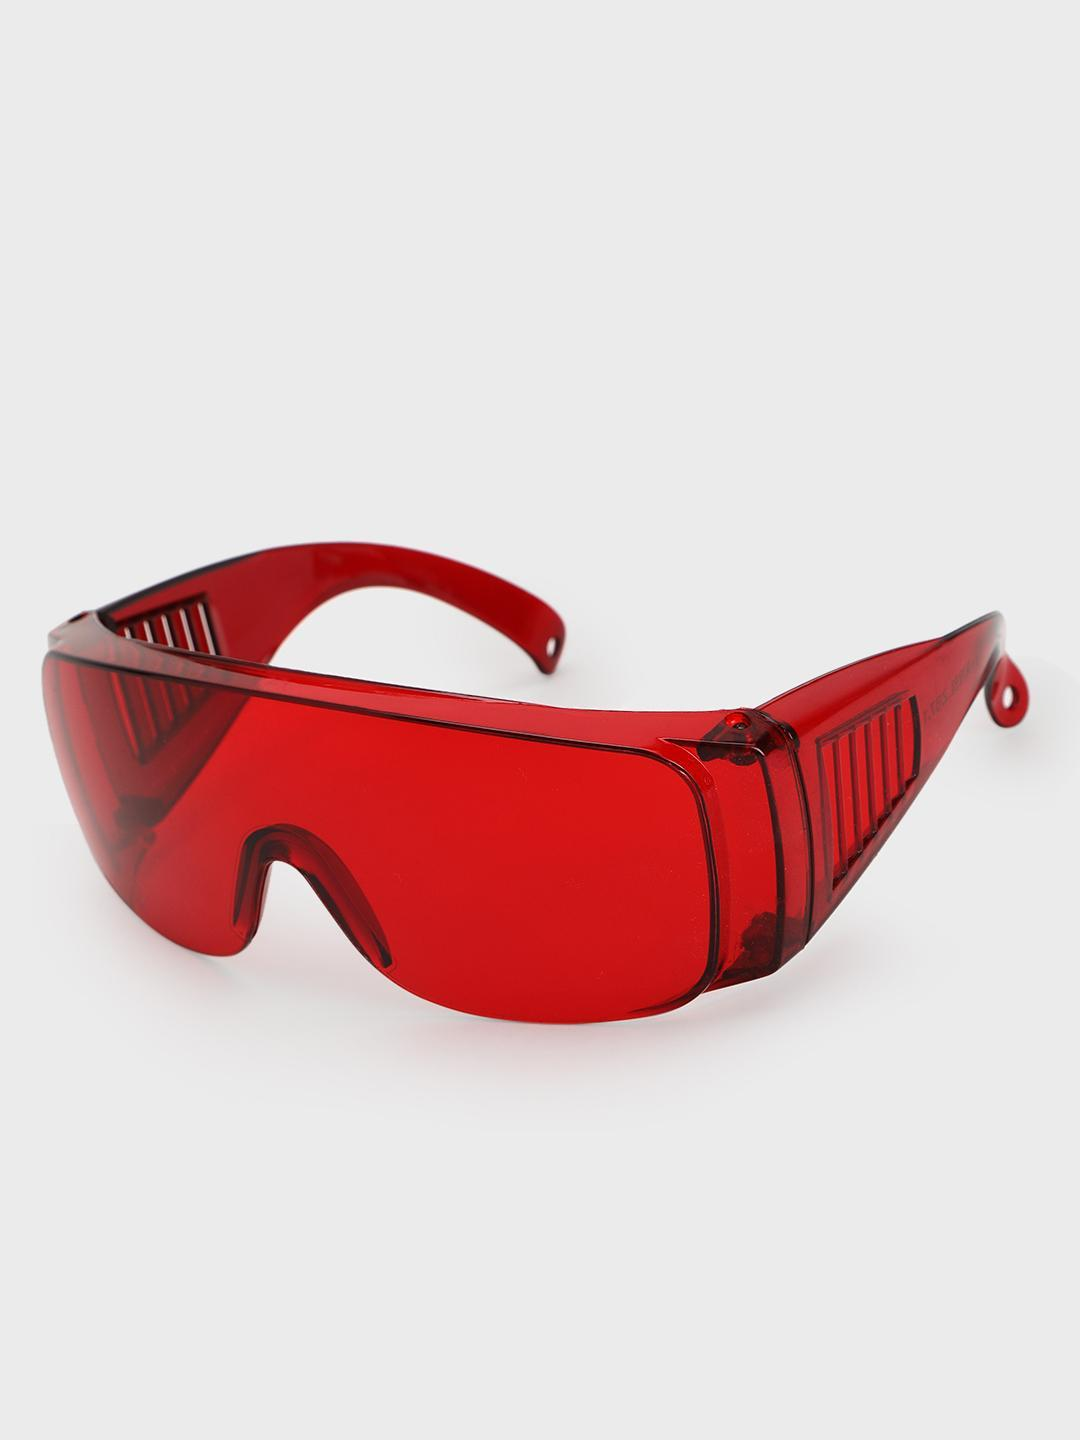 Pataaka Red Coloured Frameless Futuristic Sunglasses 1